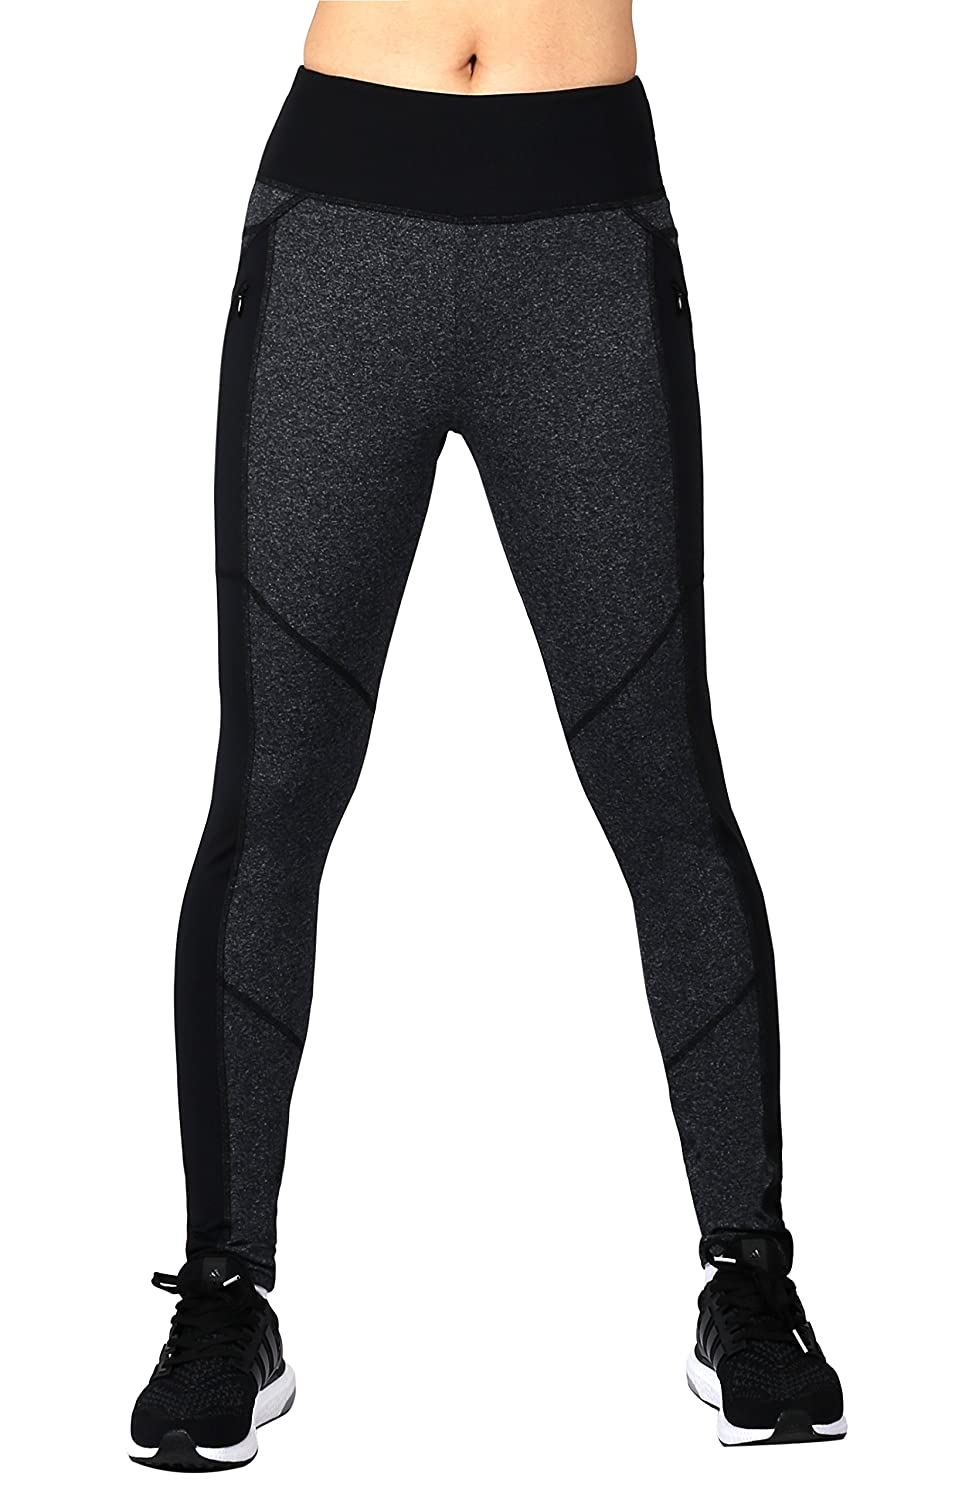 49526c7f91320 Neonysweets Womens Yoga Pants Workout Leggings Running Tights:  Amazon.co.uk: Clothing